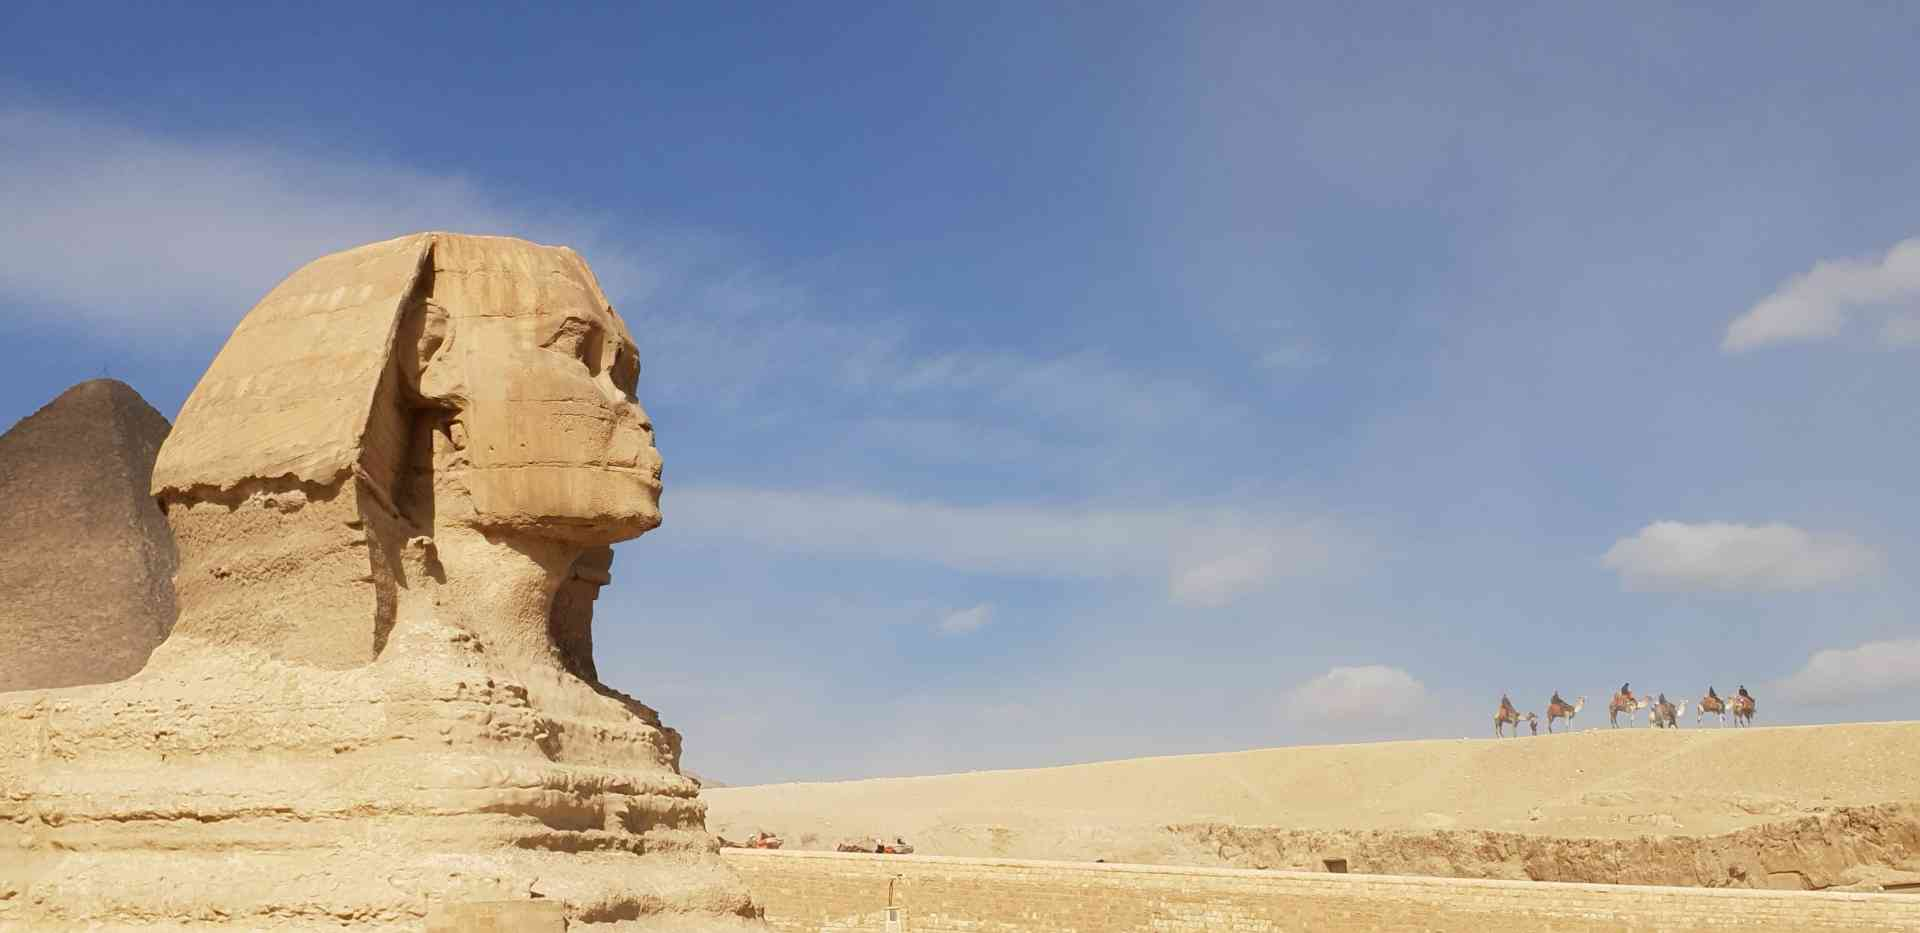 The Sphinx, Egypt by Jayne Harris